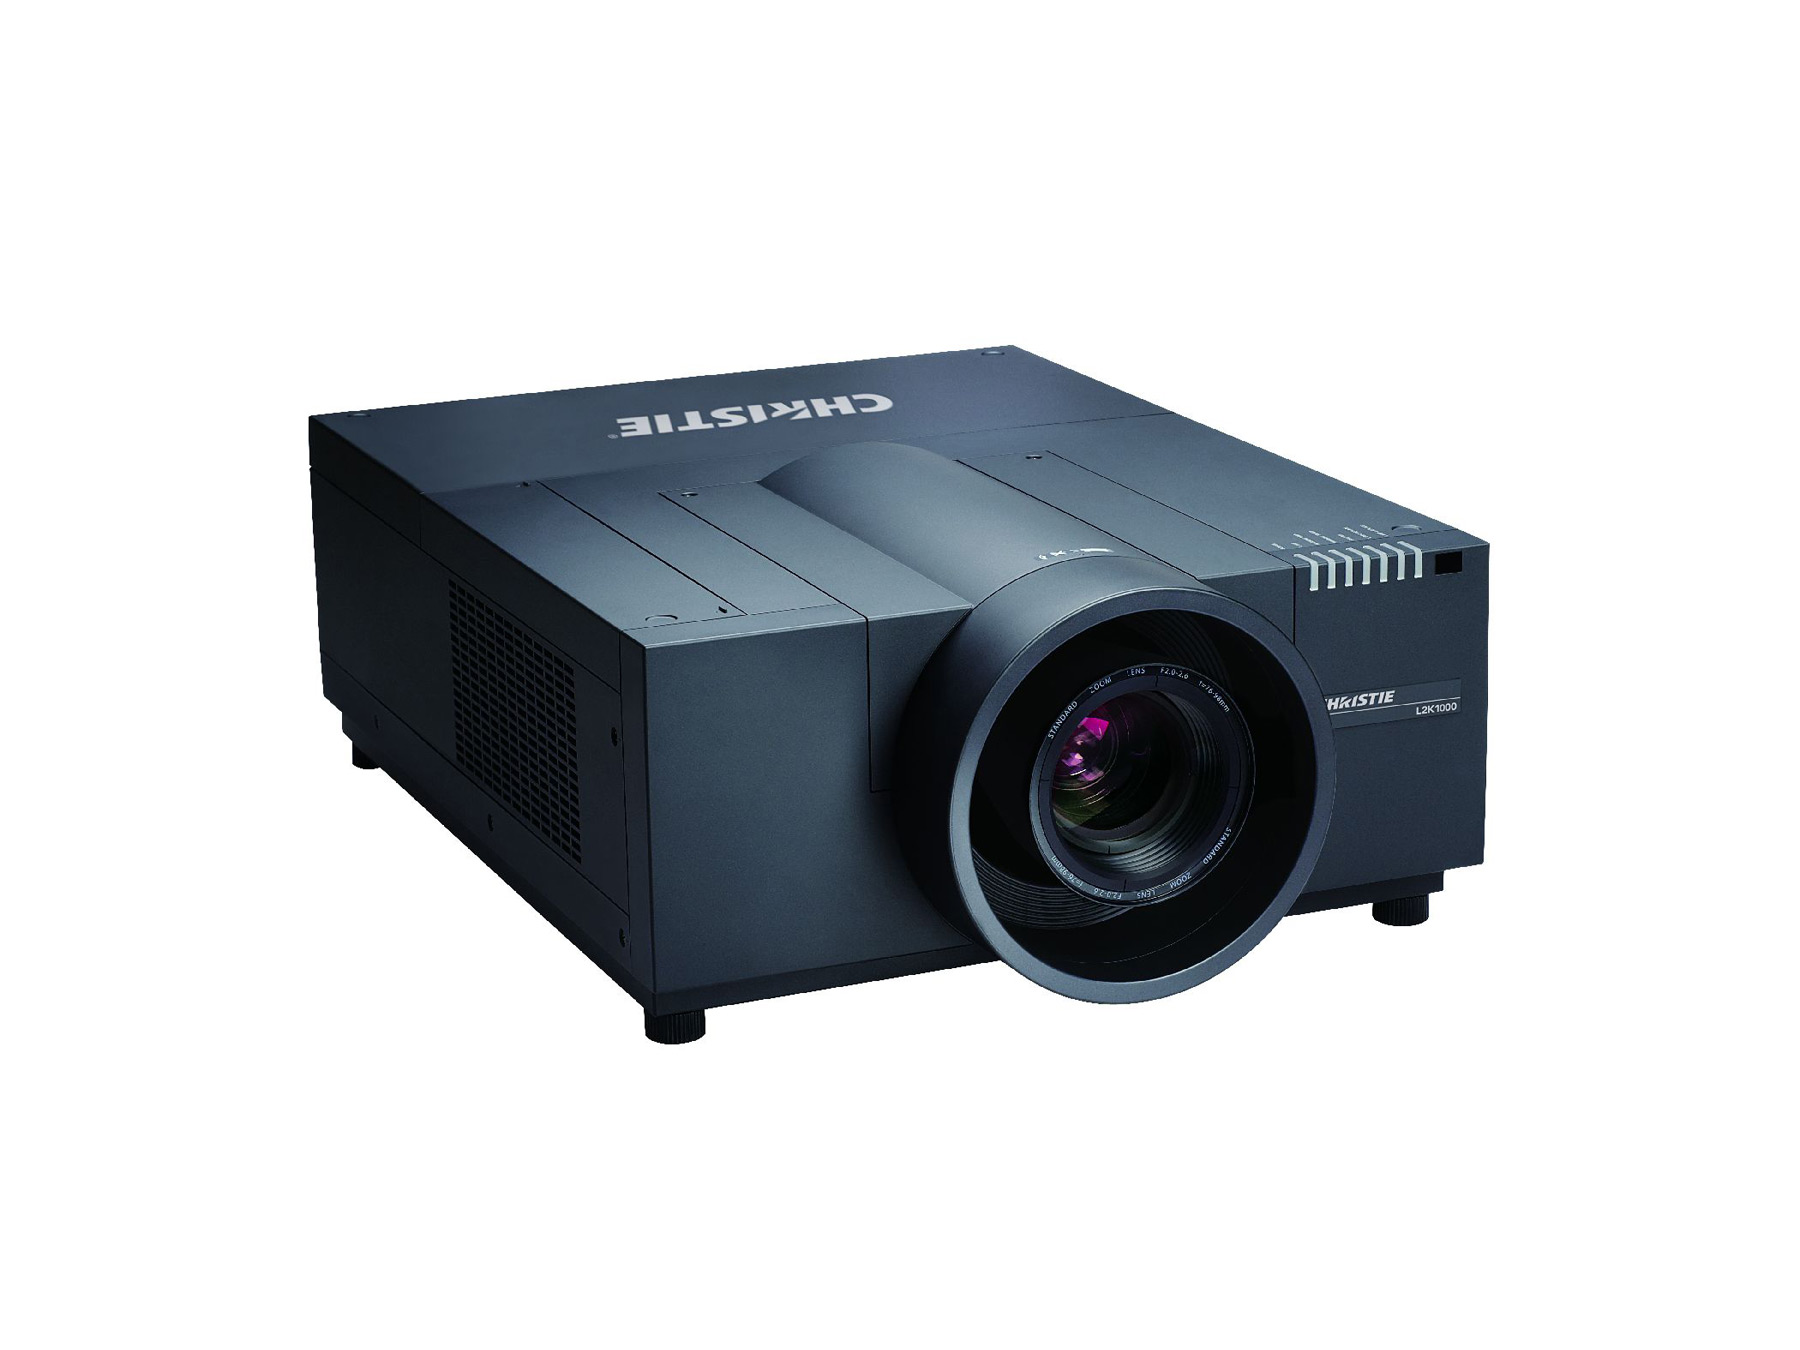 /globalassets/.catalog/products/images/christie-l2k1000/gallery/christie-l2k-1000-3-lcd-digital-projector-image-4.jpg